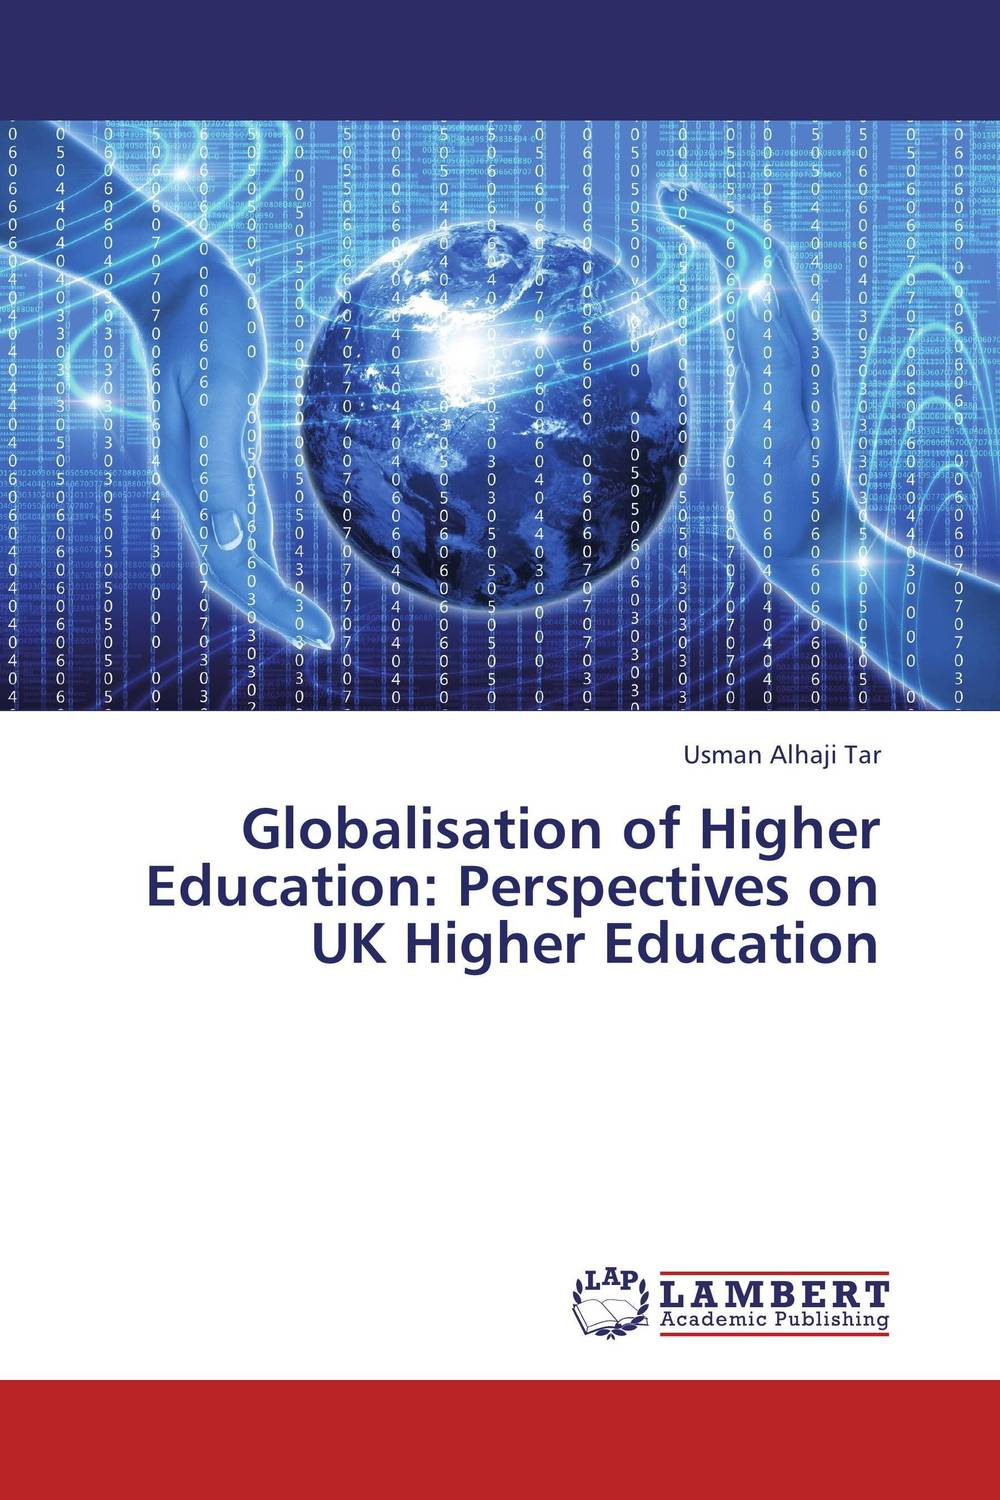 Globalisation of Higher Education: Perspectives on UK Higher Education education and language policy of ethiopia